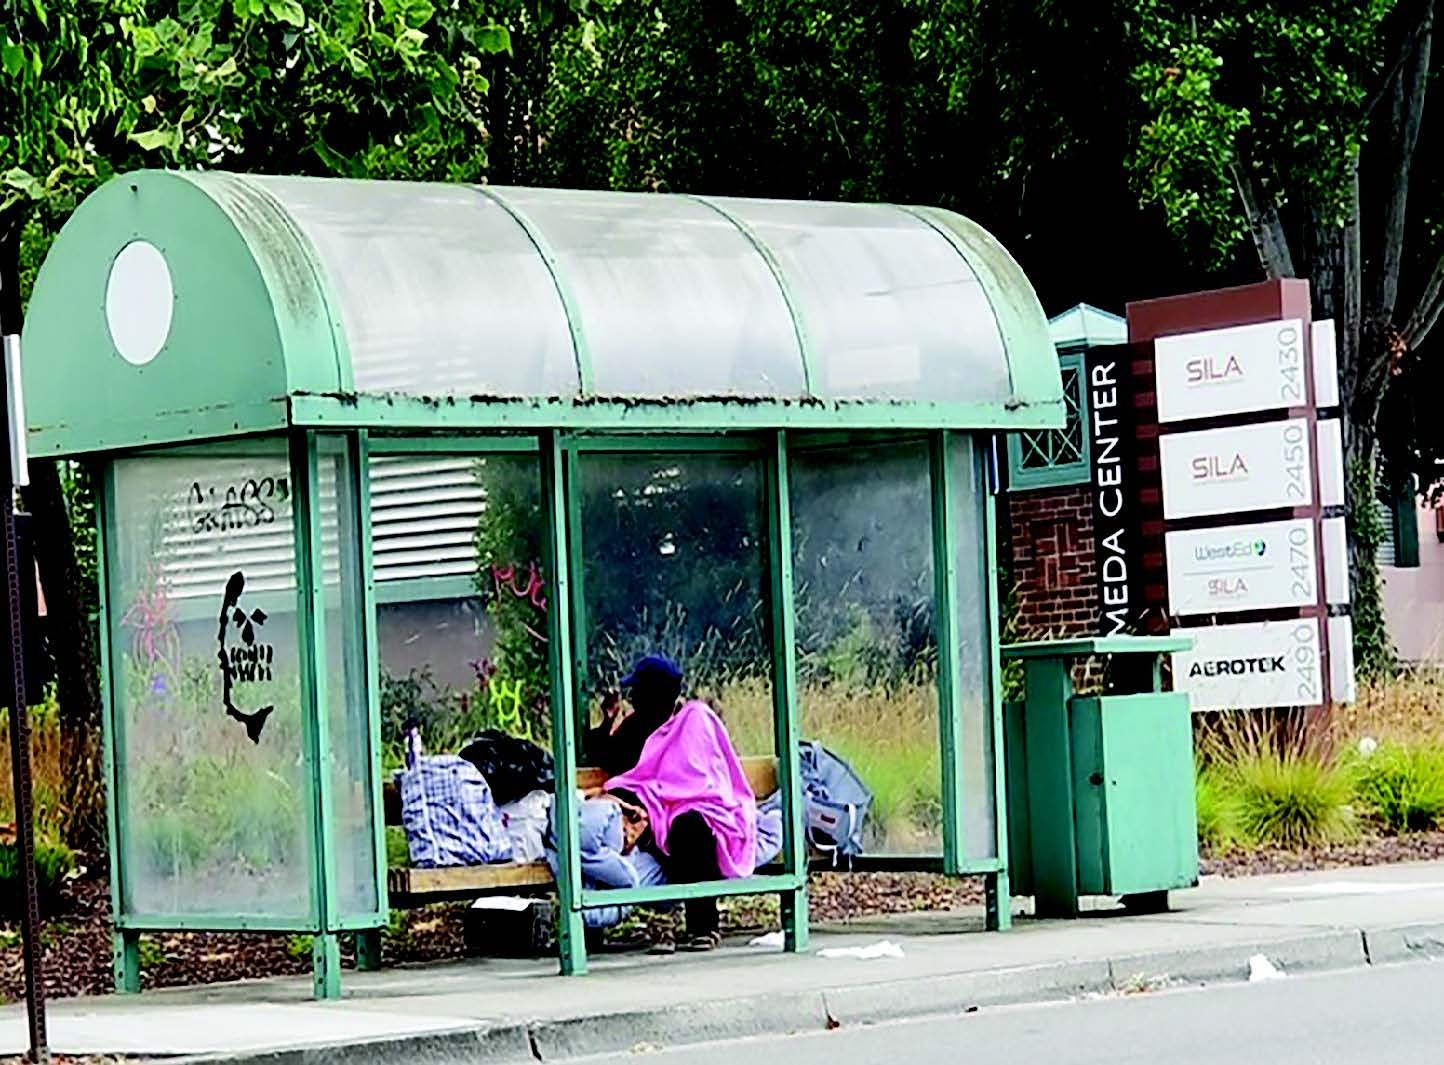 A homeless man uses a bus stop in Marina Village in this 2019 photograph. The city hopes to use the $285,767 in proposed funds from Alameda County to help the homeless community in Alameda. The city will use the funds to help find permanent housing for the homeless and help those on the verge of homelessness pay living expenses.